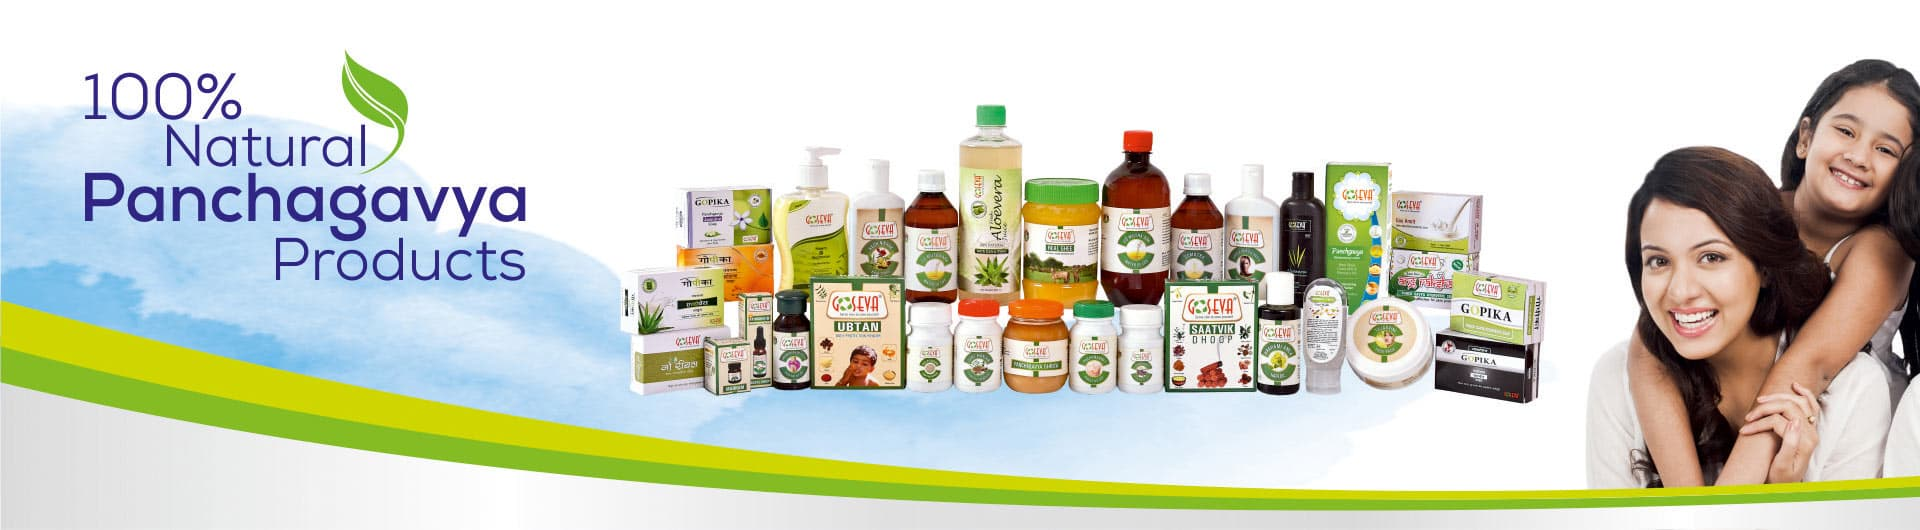 Panchgavya Products